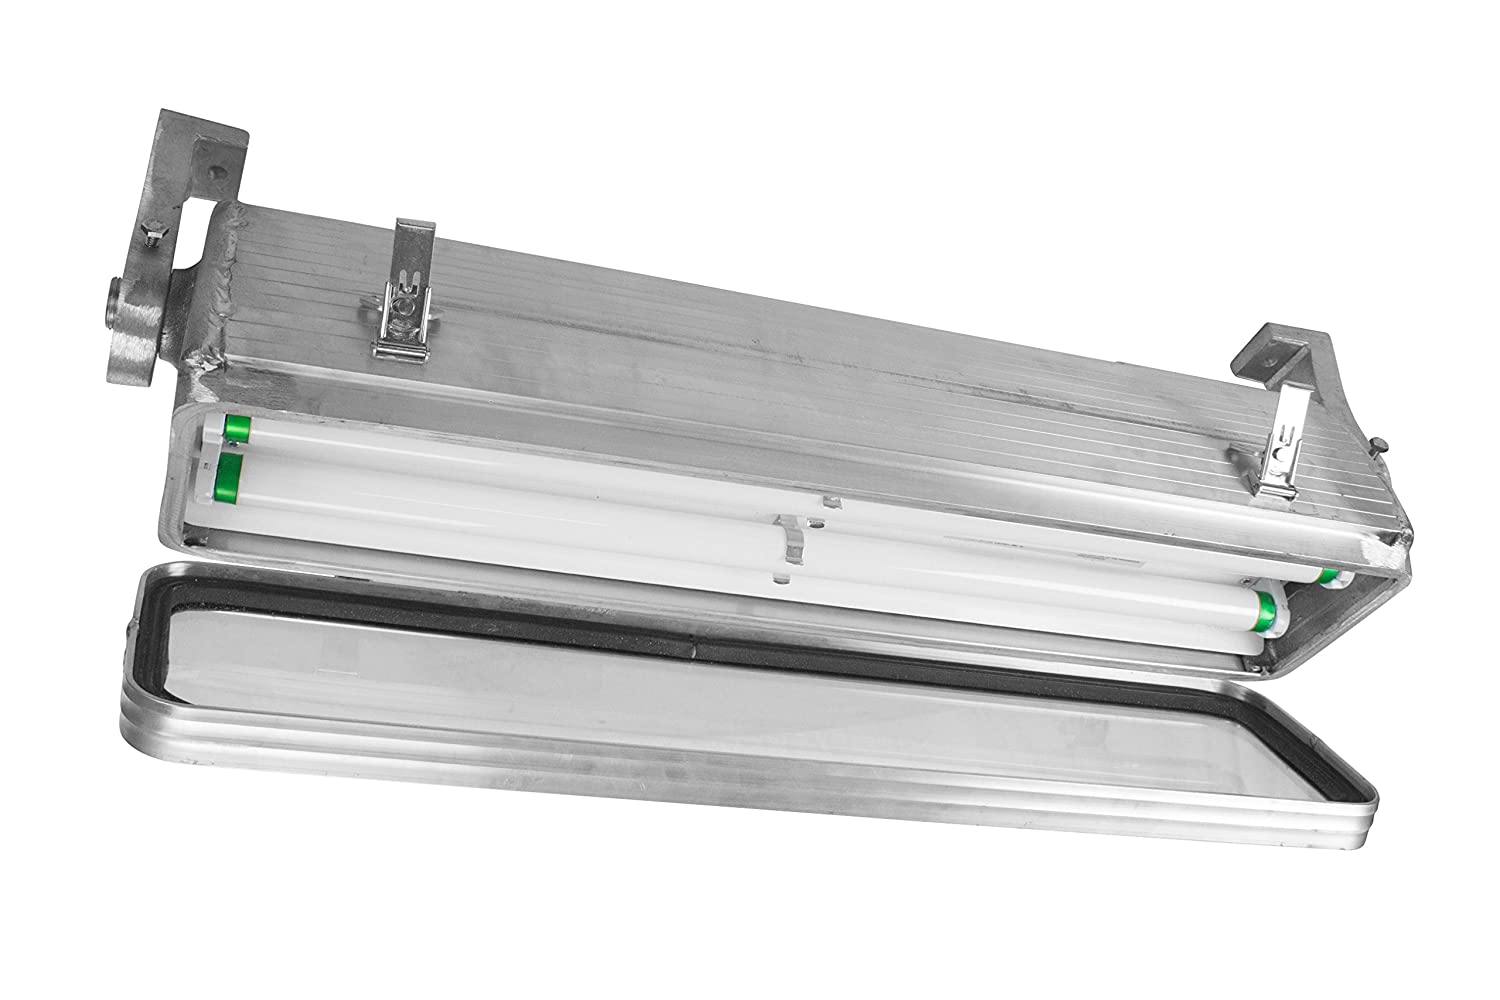 Hazardous location area fluorescent light 2 foot 2 lamp class 1 division 2 groups a d t8 pendant